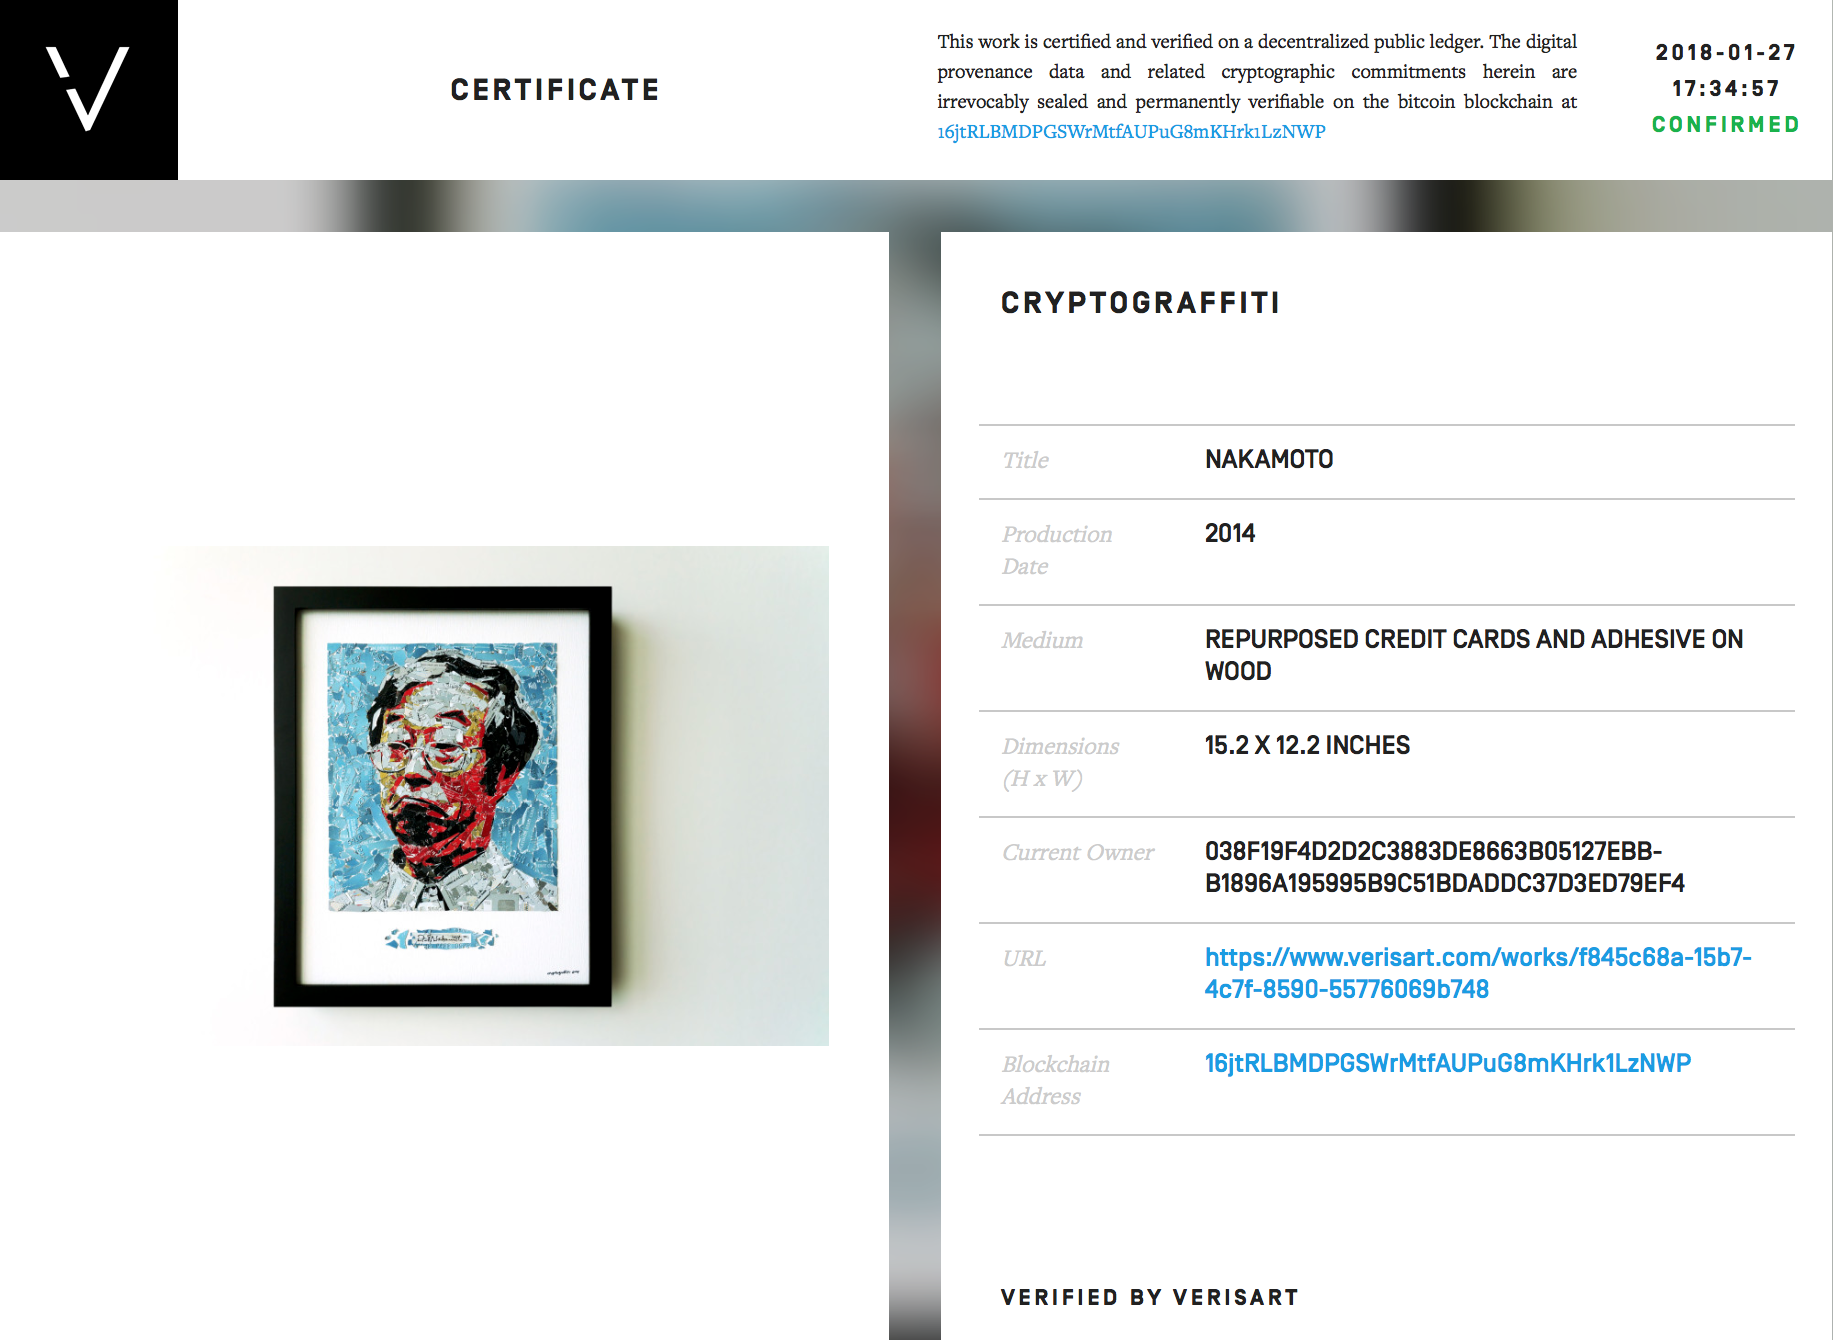 """Blockchain provenance from Verisart for """"Nakamoto"""" by the artist Cryptograffiti"""